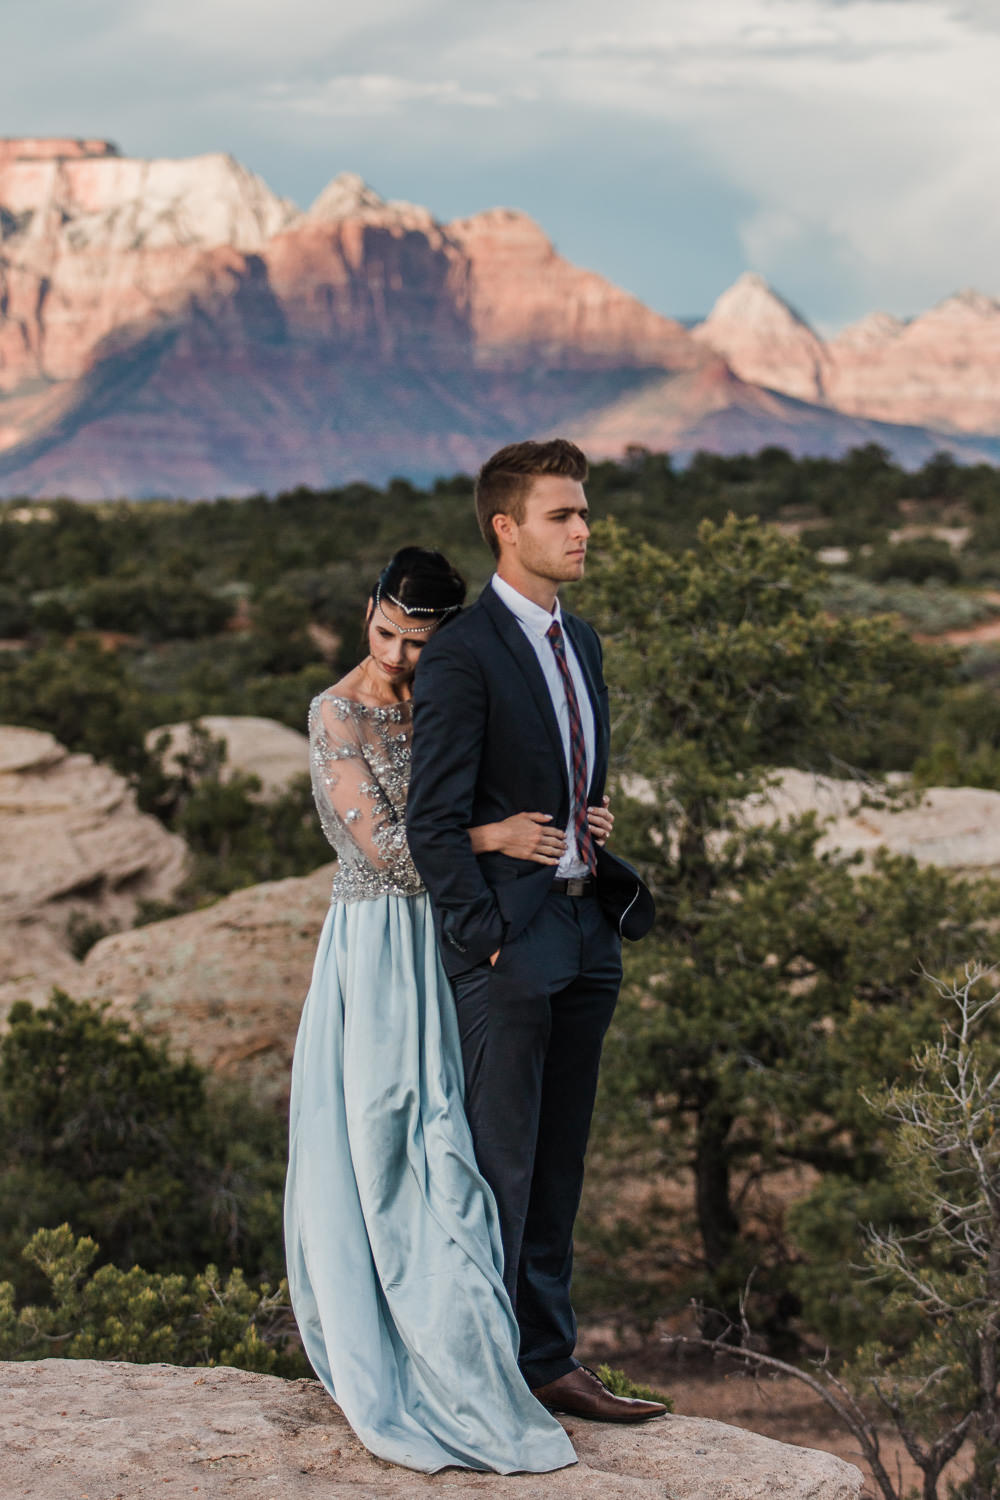 KyleLovesTori-Zion-National-Park-Adventure-Bridals-9.jpg